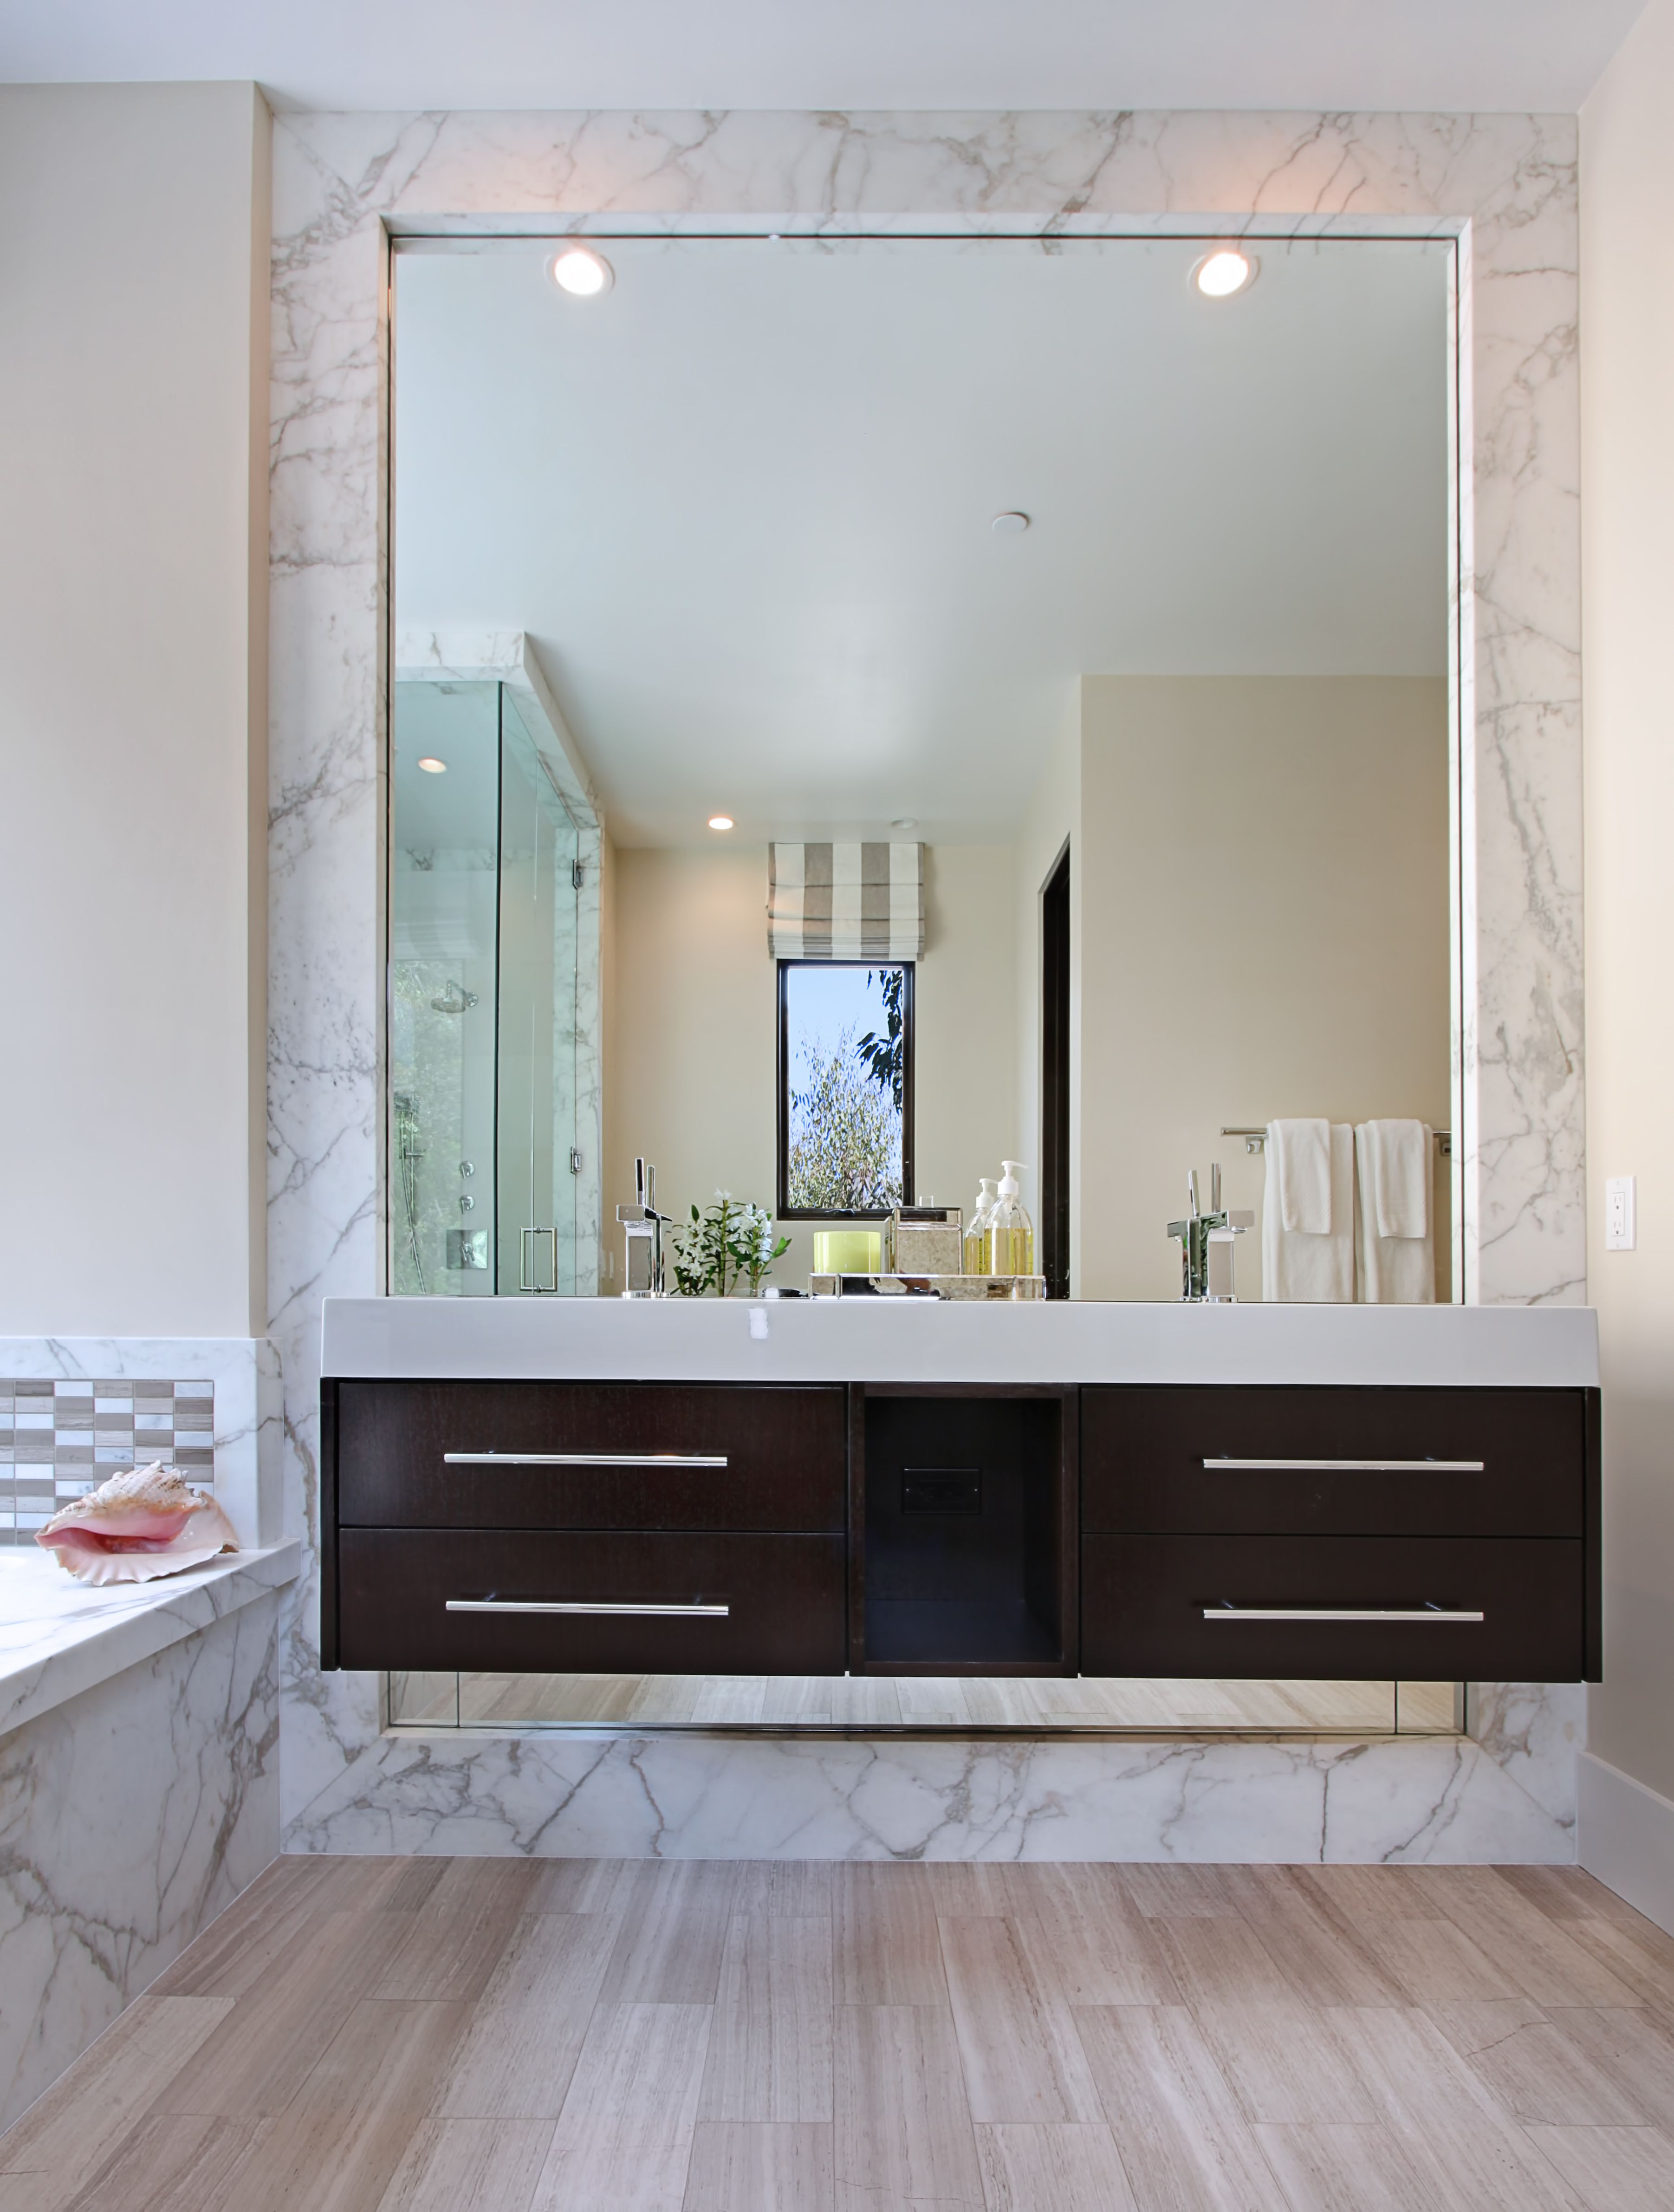 Bathroom Contemporary Cantilevered Sink Decorative Ideas With Bathtub Flat Cabinets Floating Vanity Large Mirror Light Wood Floor Recessed Lighting Roman